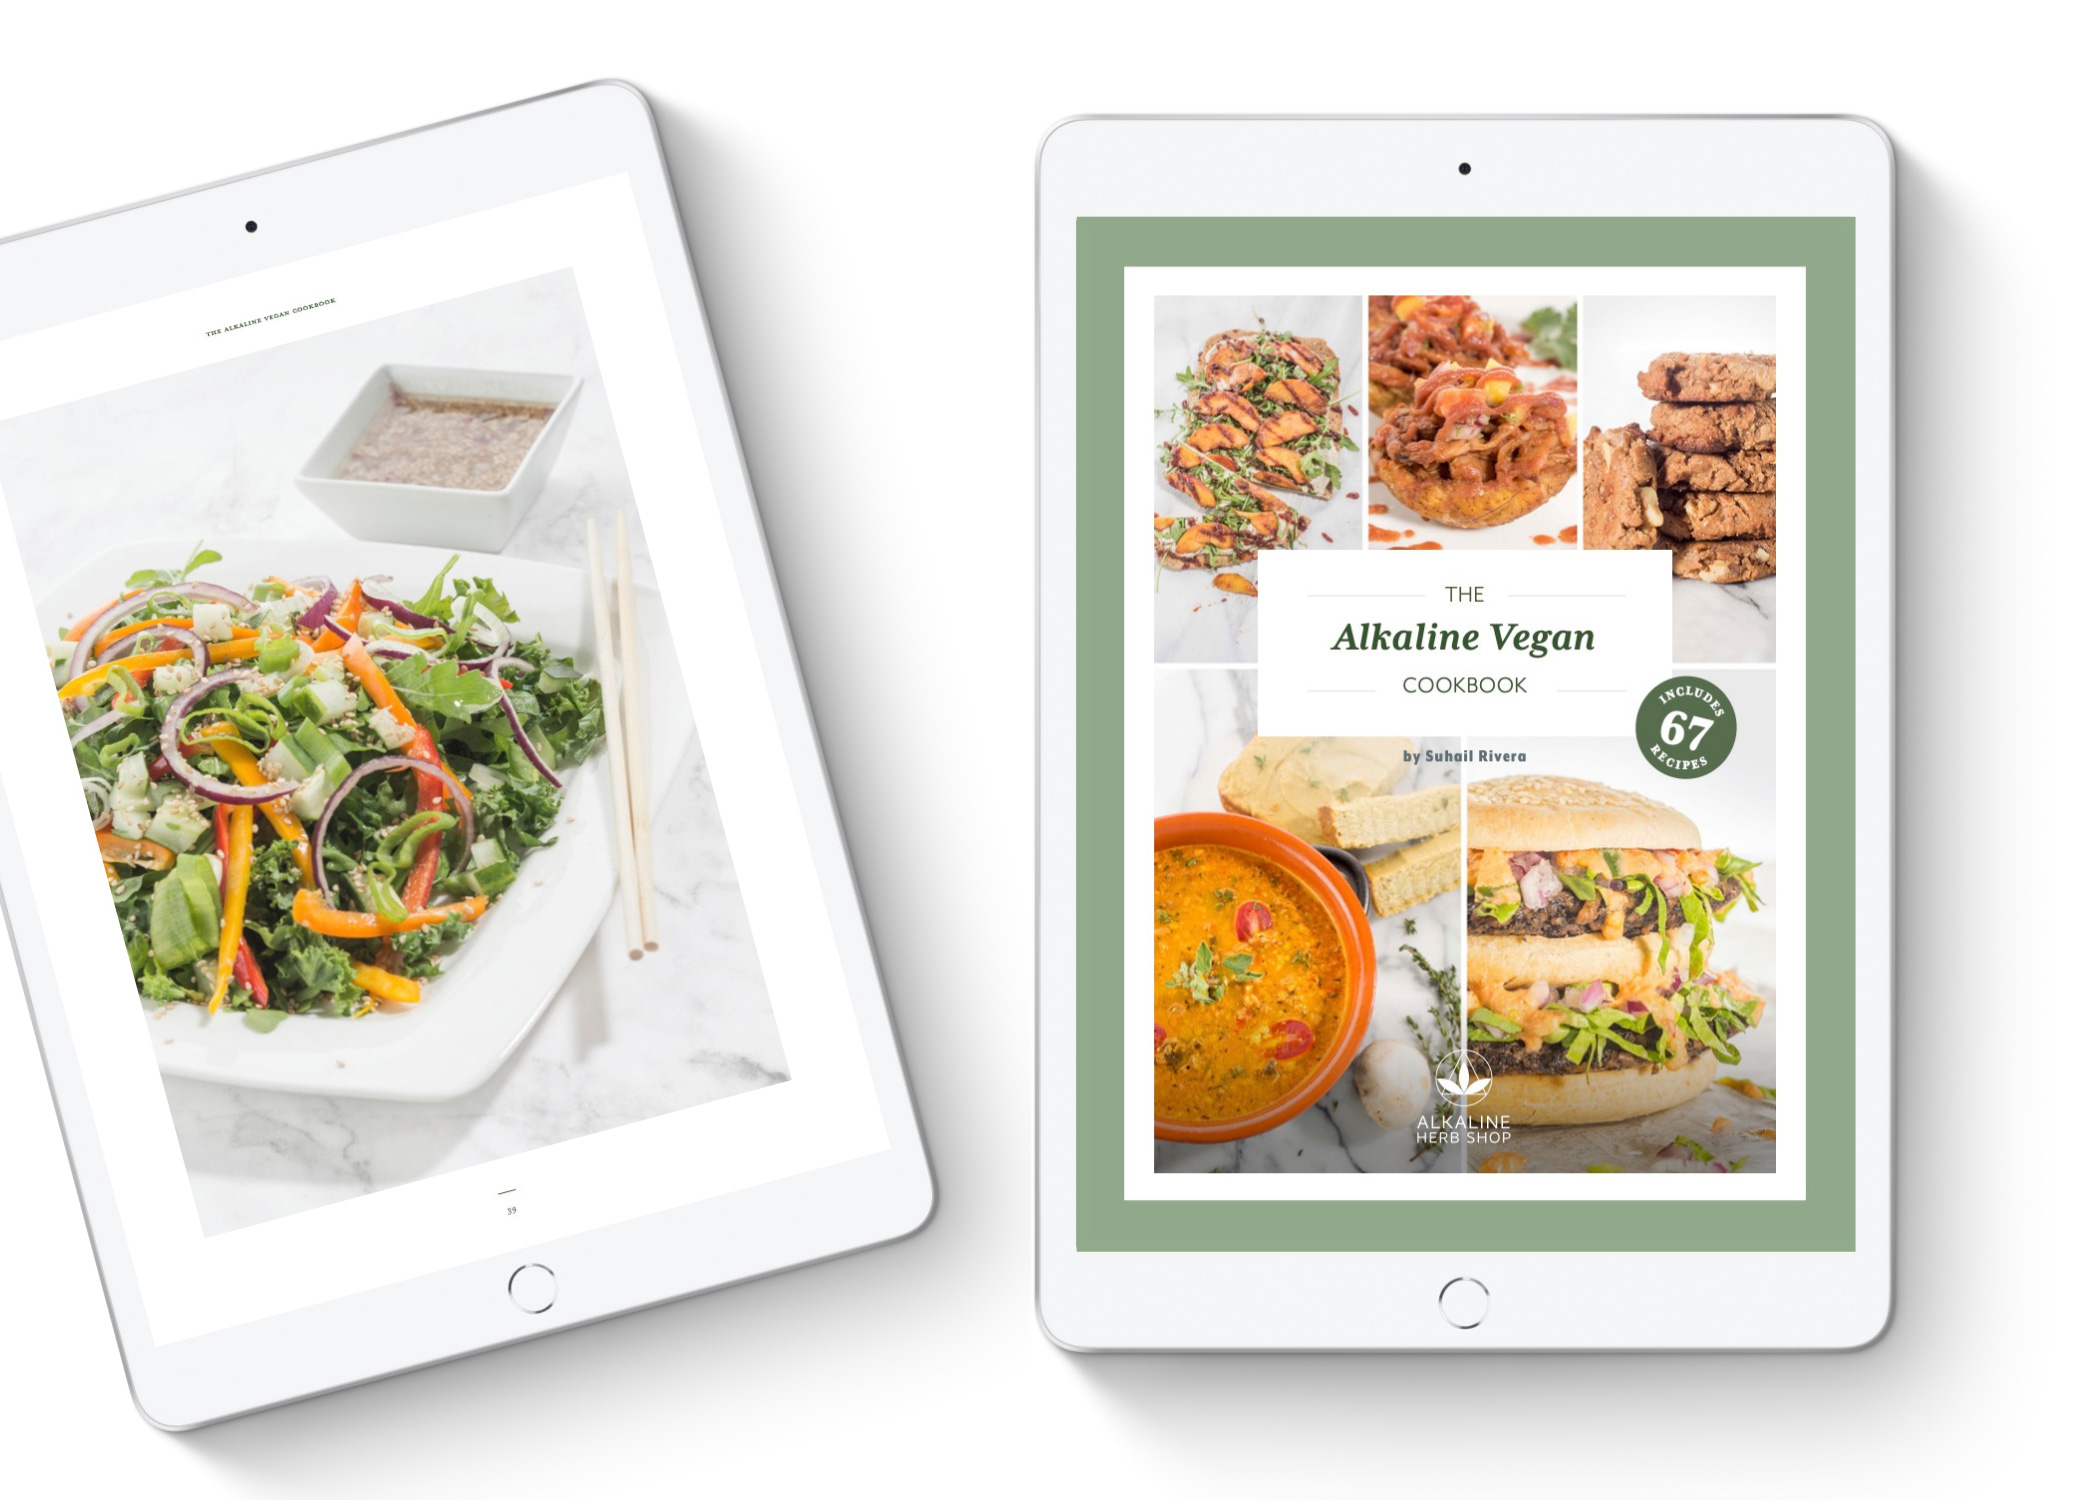 Alkaline Herb Shop's vegan cookbook highlighting eight recipe pages in ipad mockup set at an angle against grey backdrop.